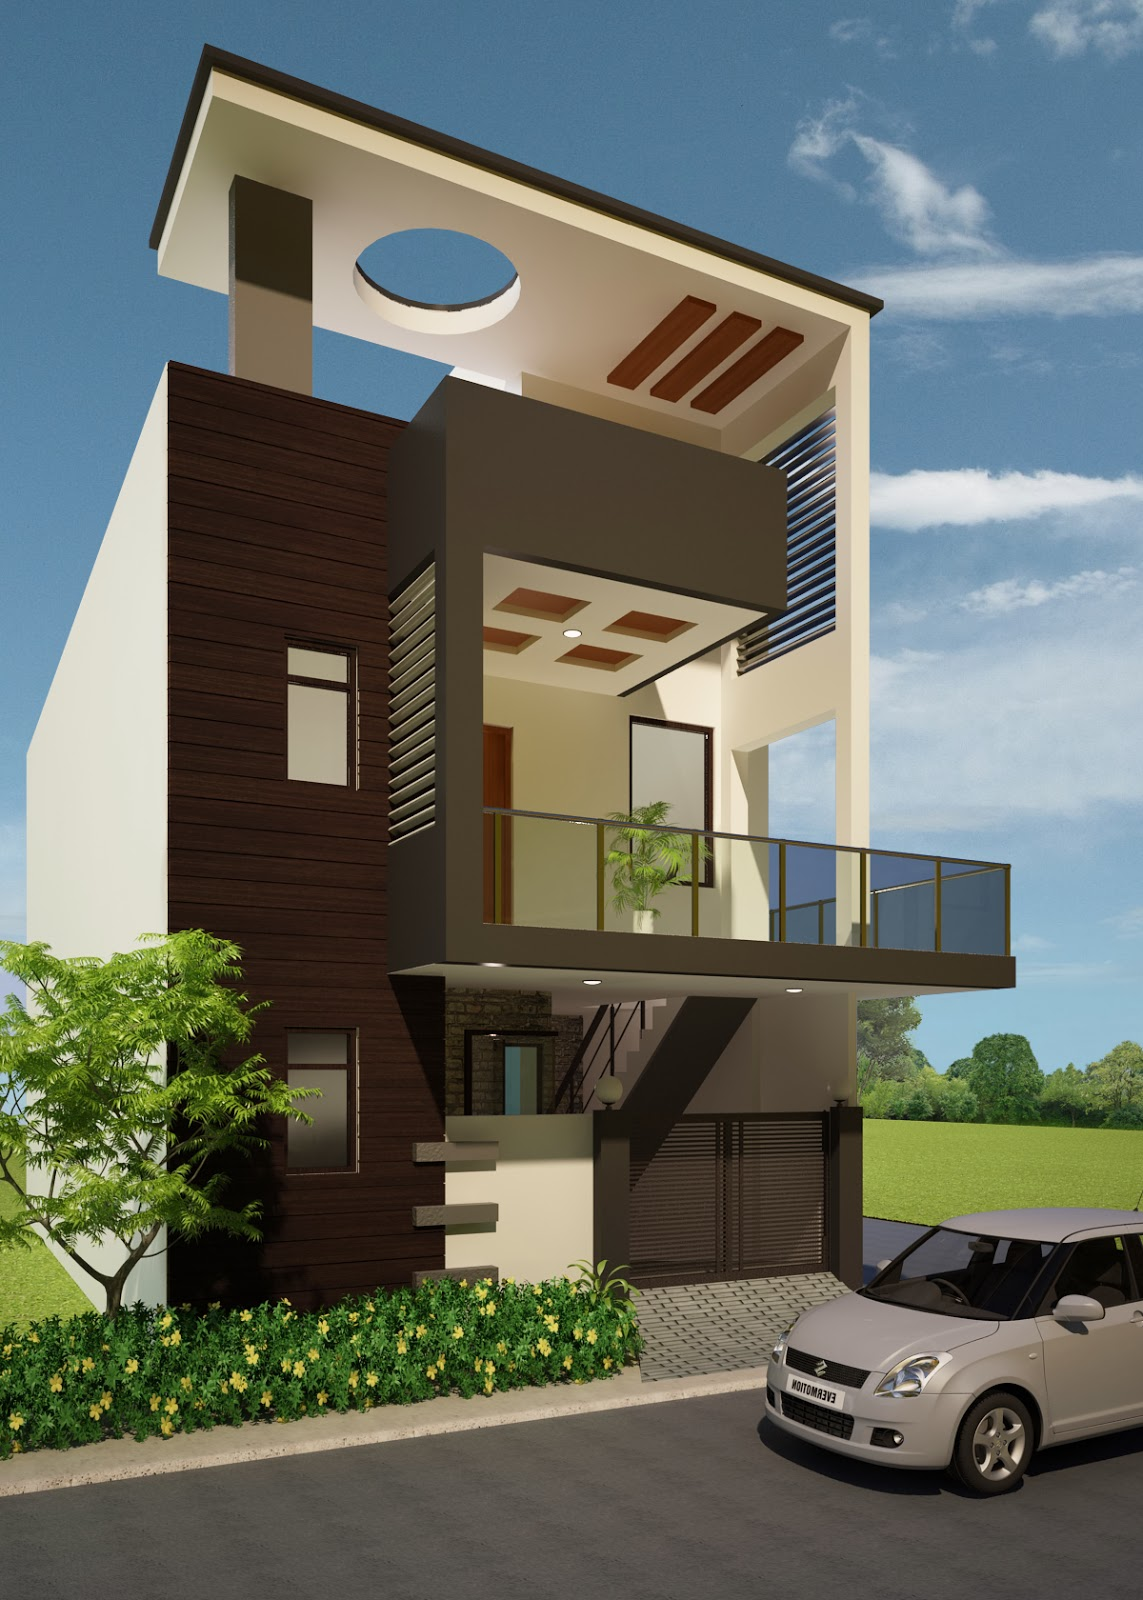 Home Design Ideas Elevation: 3D Visualization : Some New Elevations